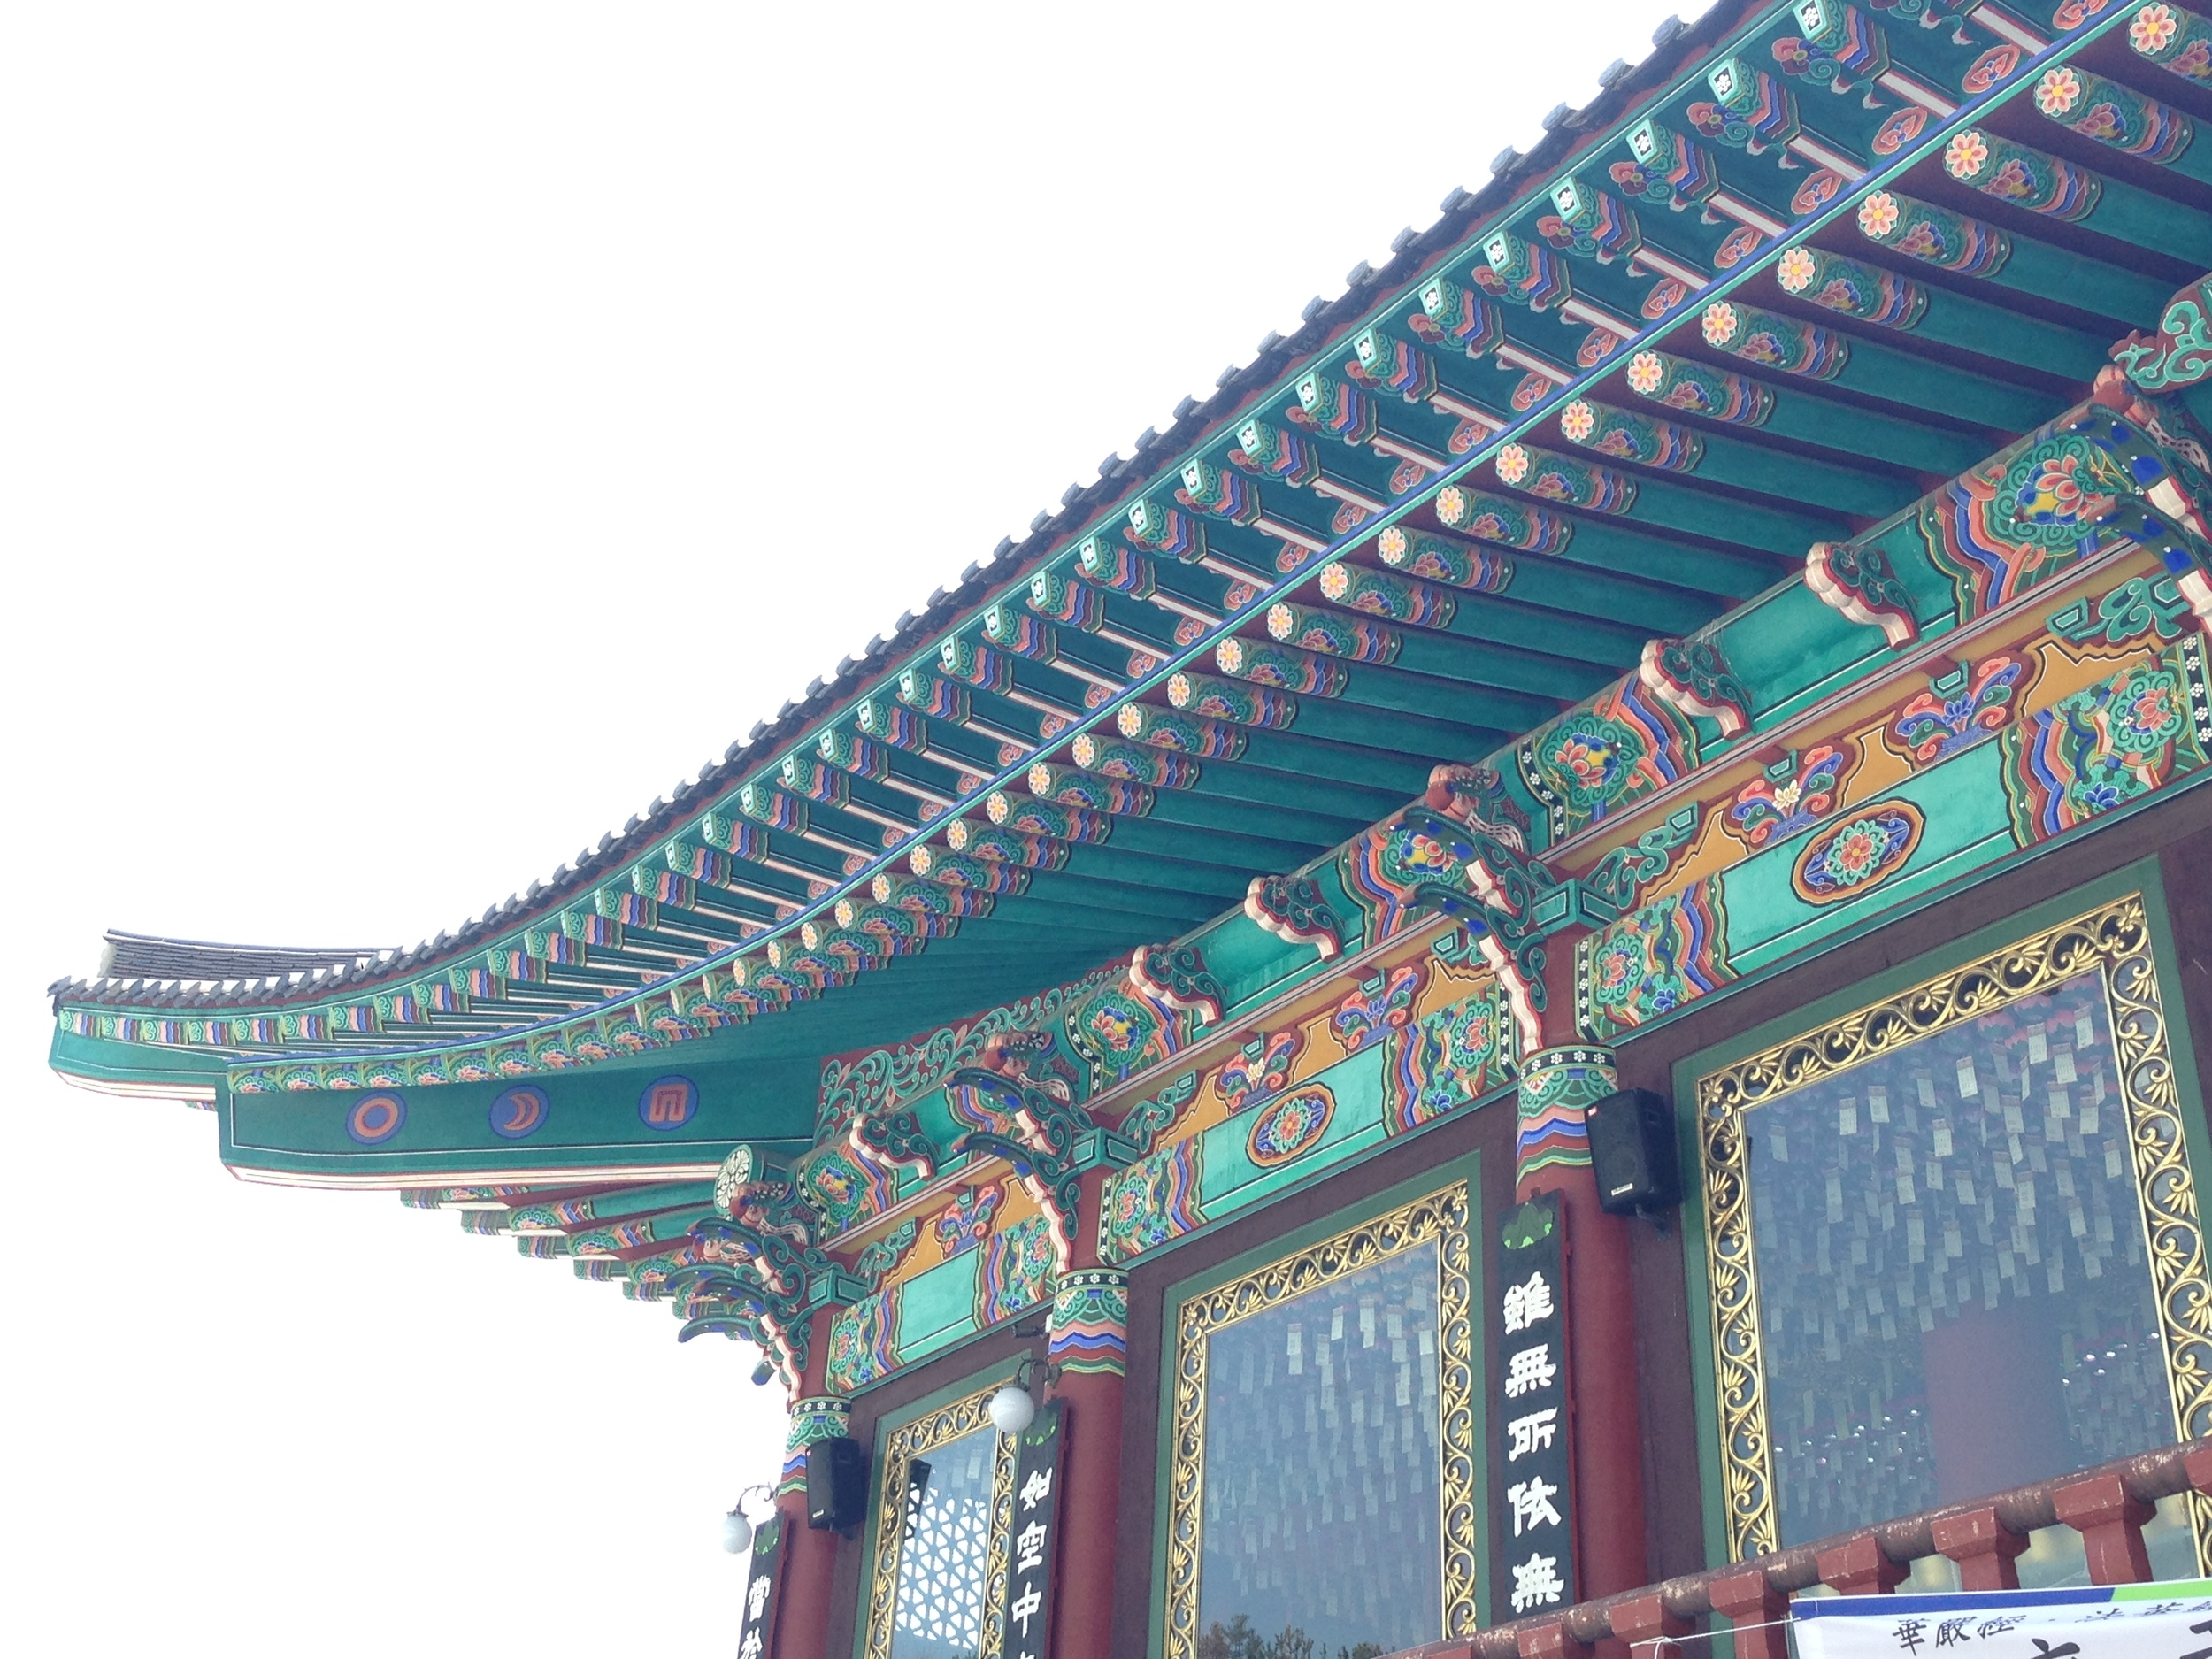 Donghwasa Temple. Only an hour away from Daegu. Going to spend a lot of zen time here :)